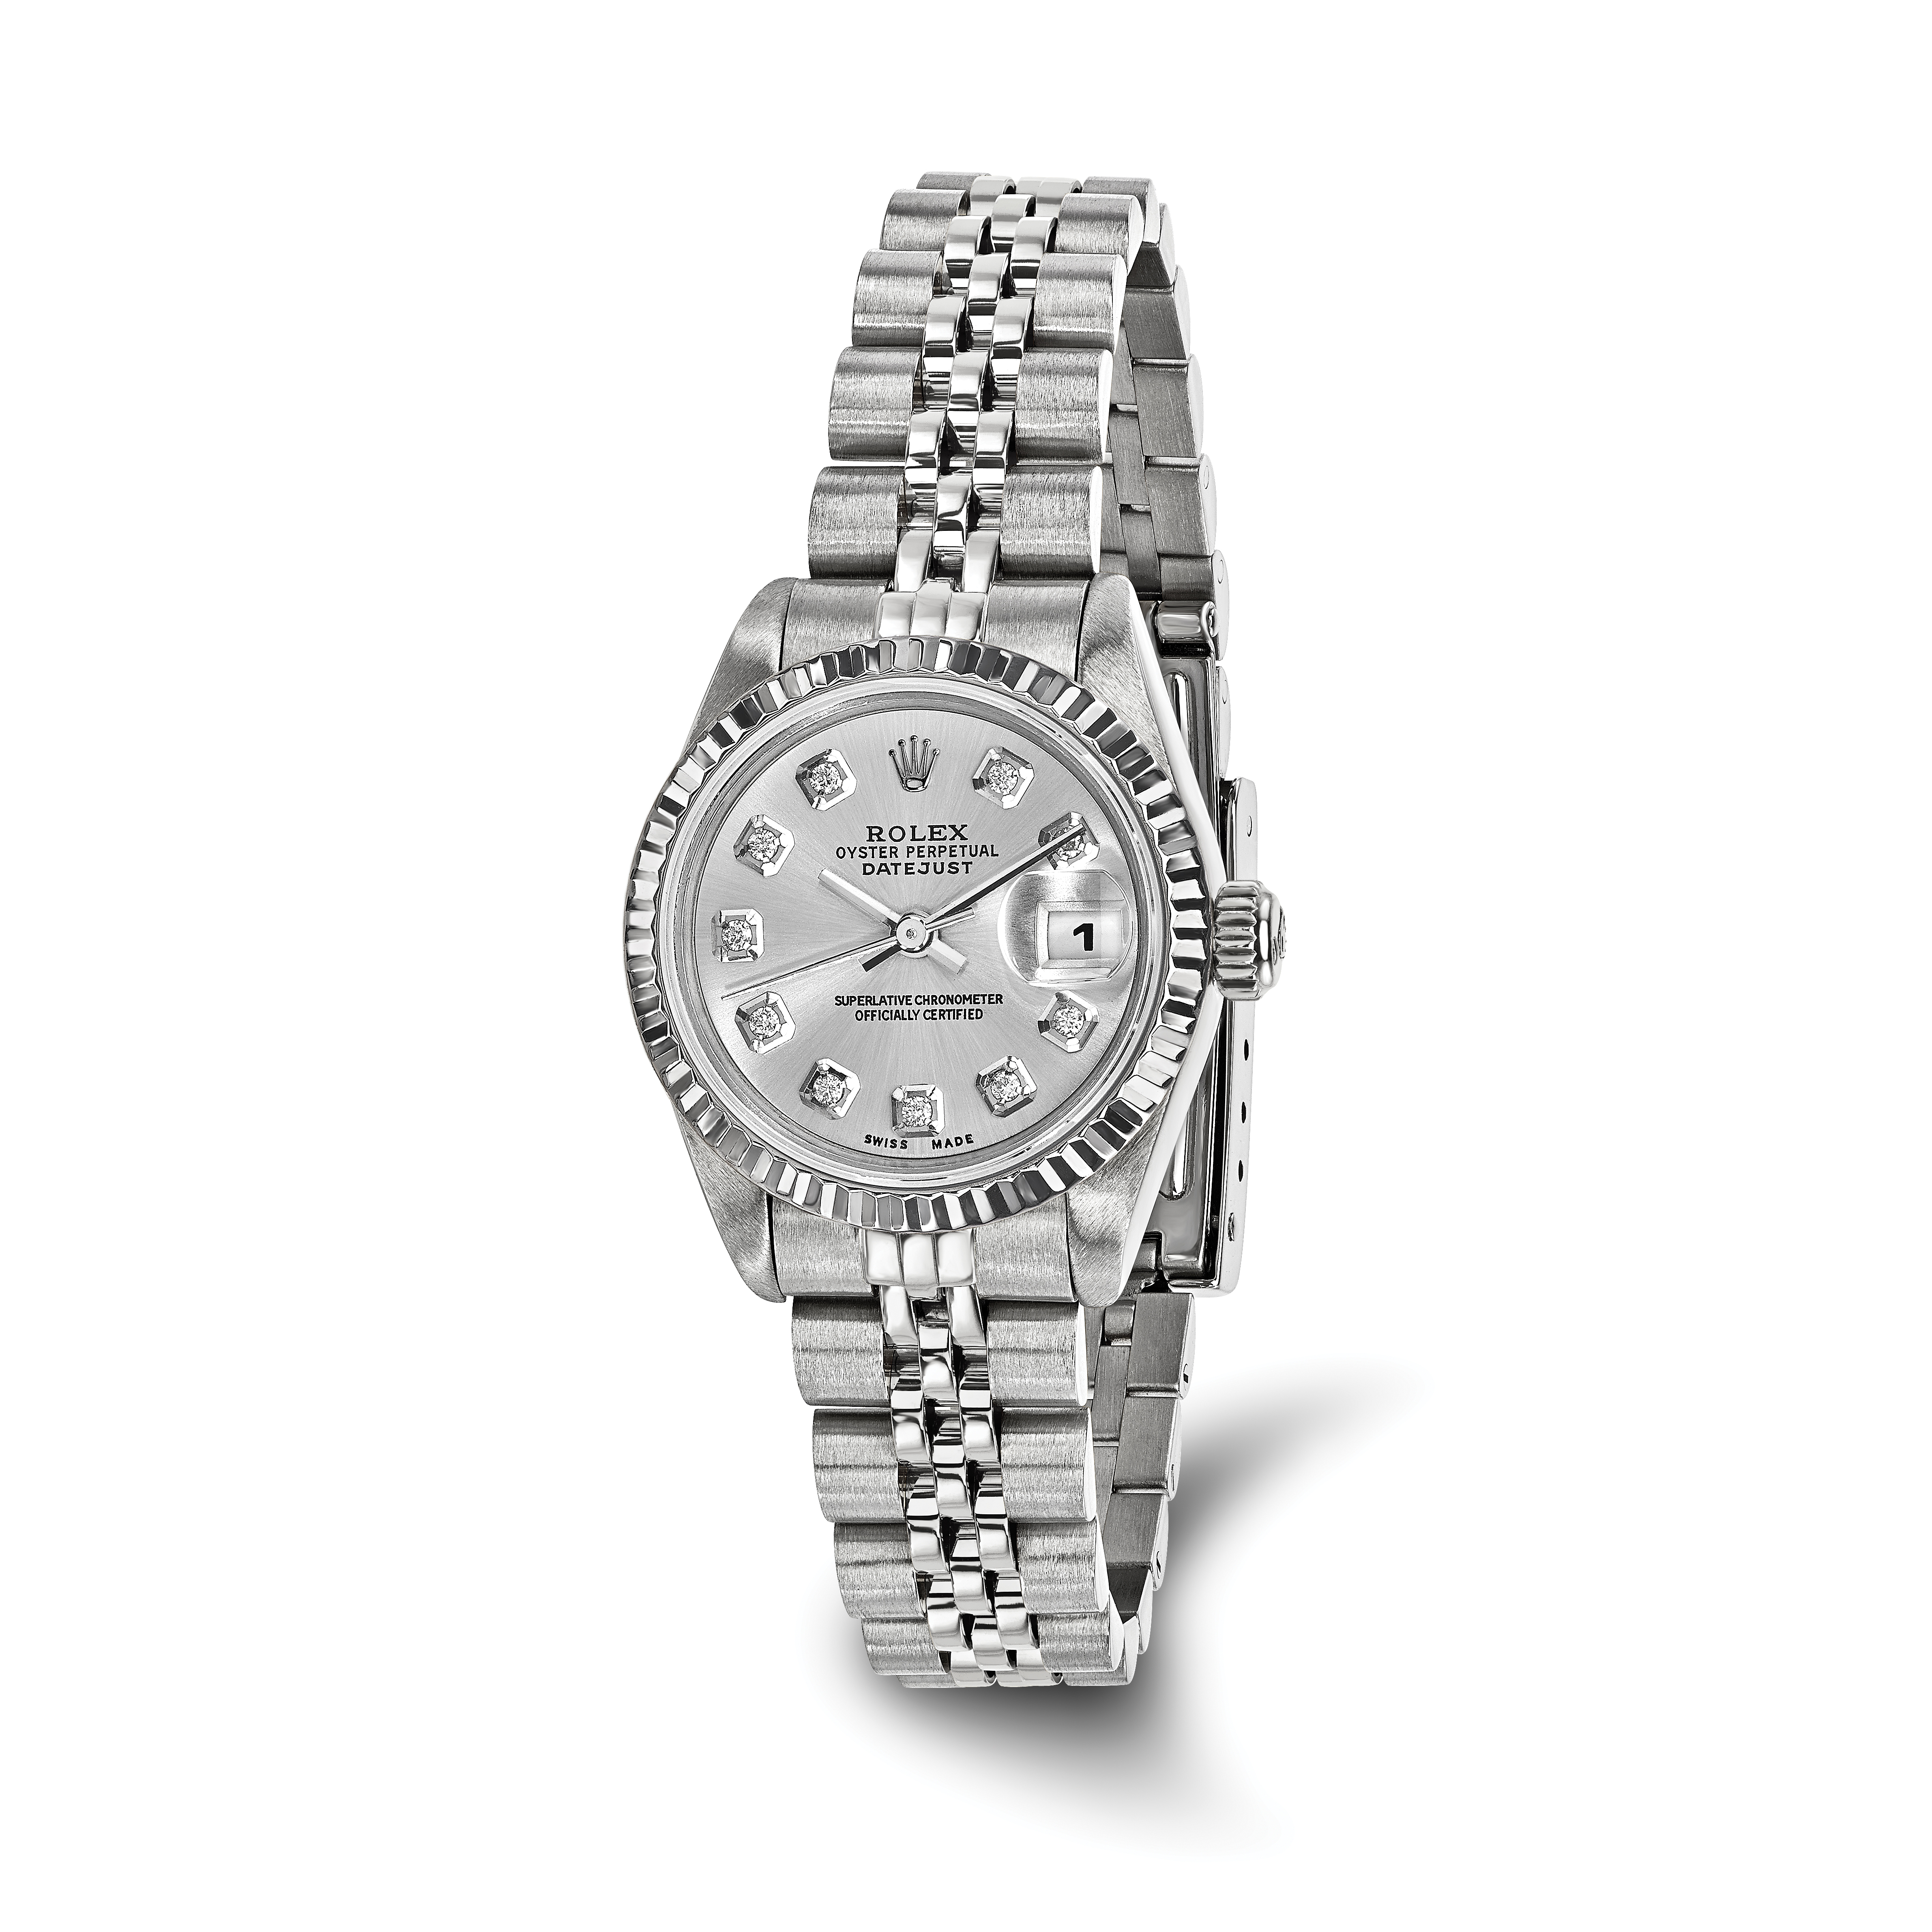 Pre-owned Rolex Steel/18kw Bezel, Ladies Diamond Silver Watch